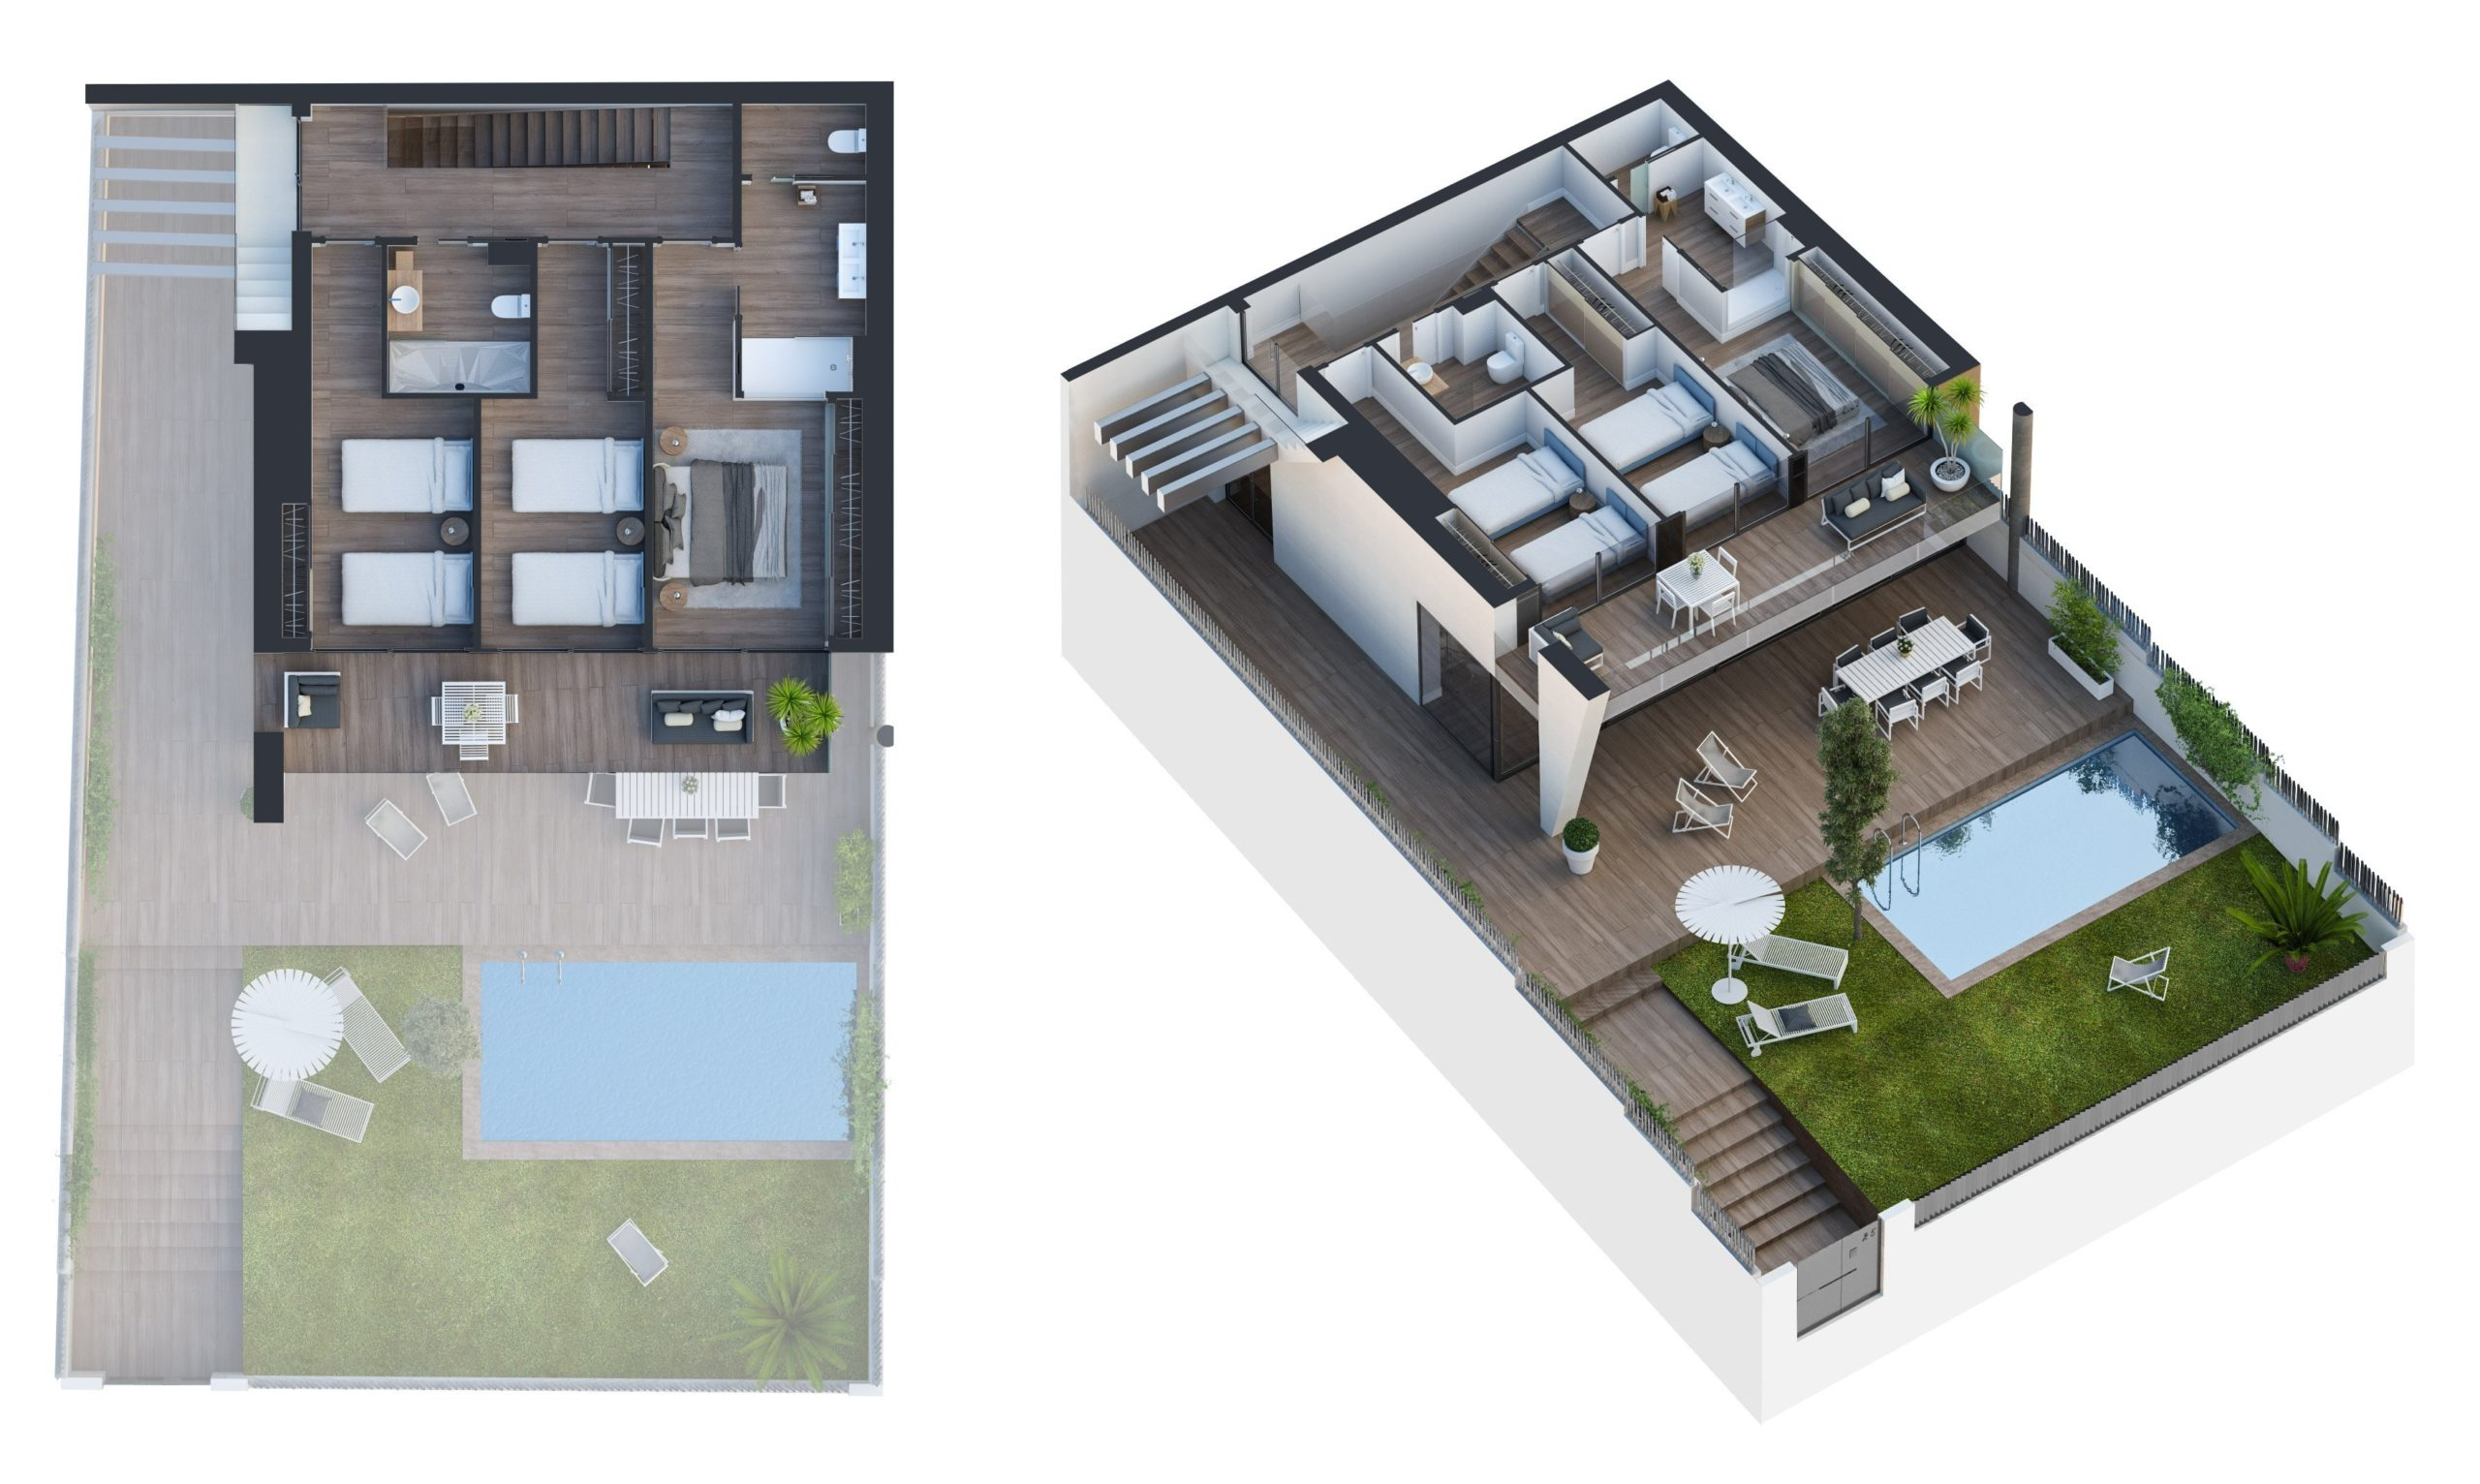 Render plan view and axonometric of a house by GAYARRE infografia